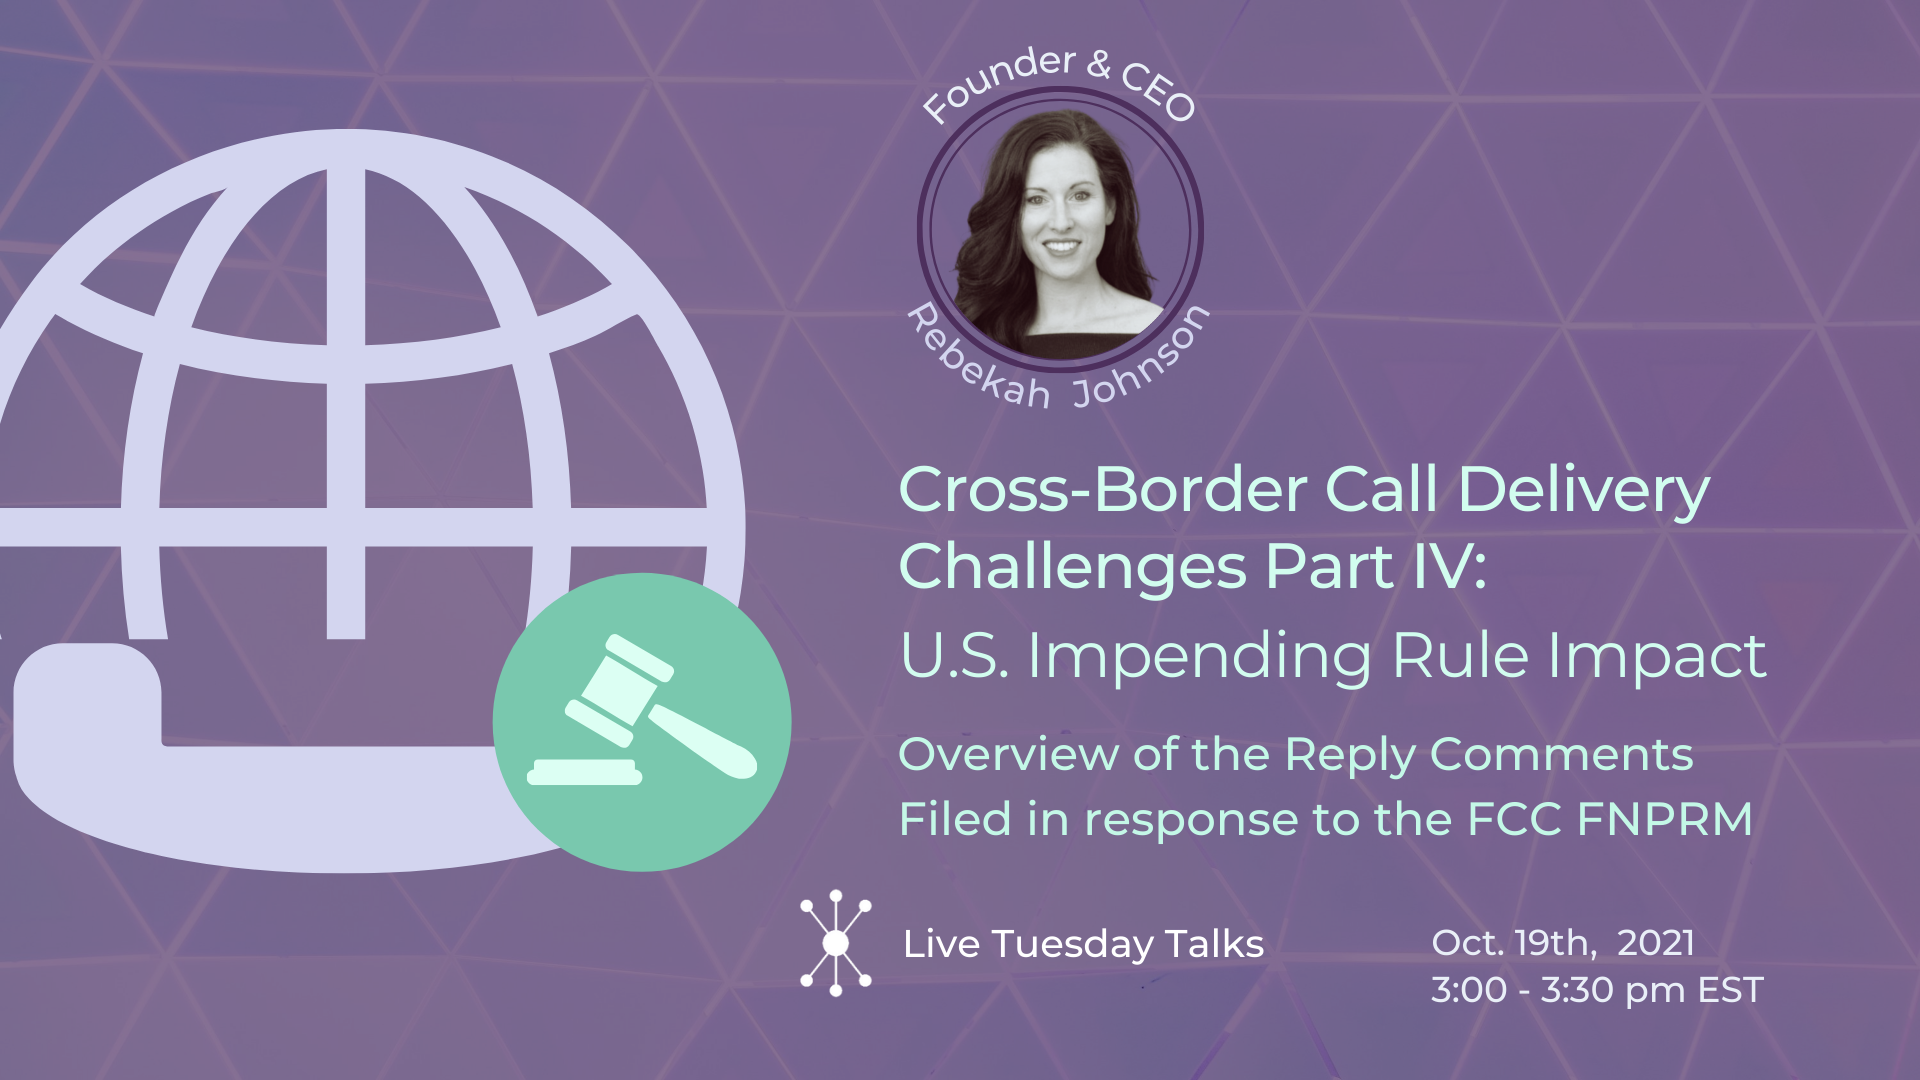 Cross Border Call Delivery IV: U.S. Impending Rule Impact